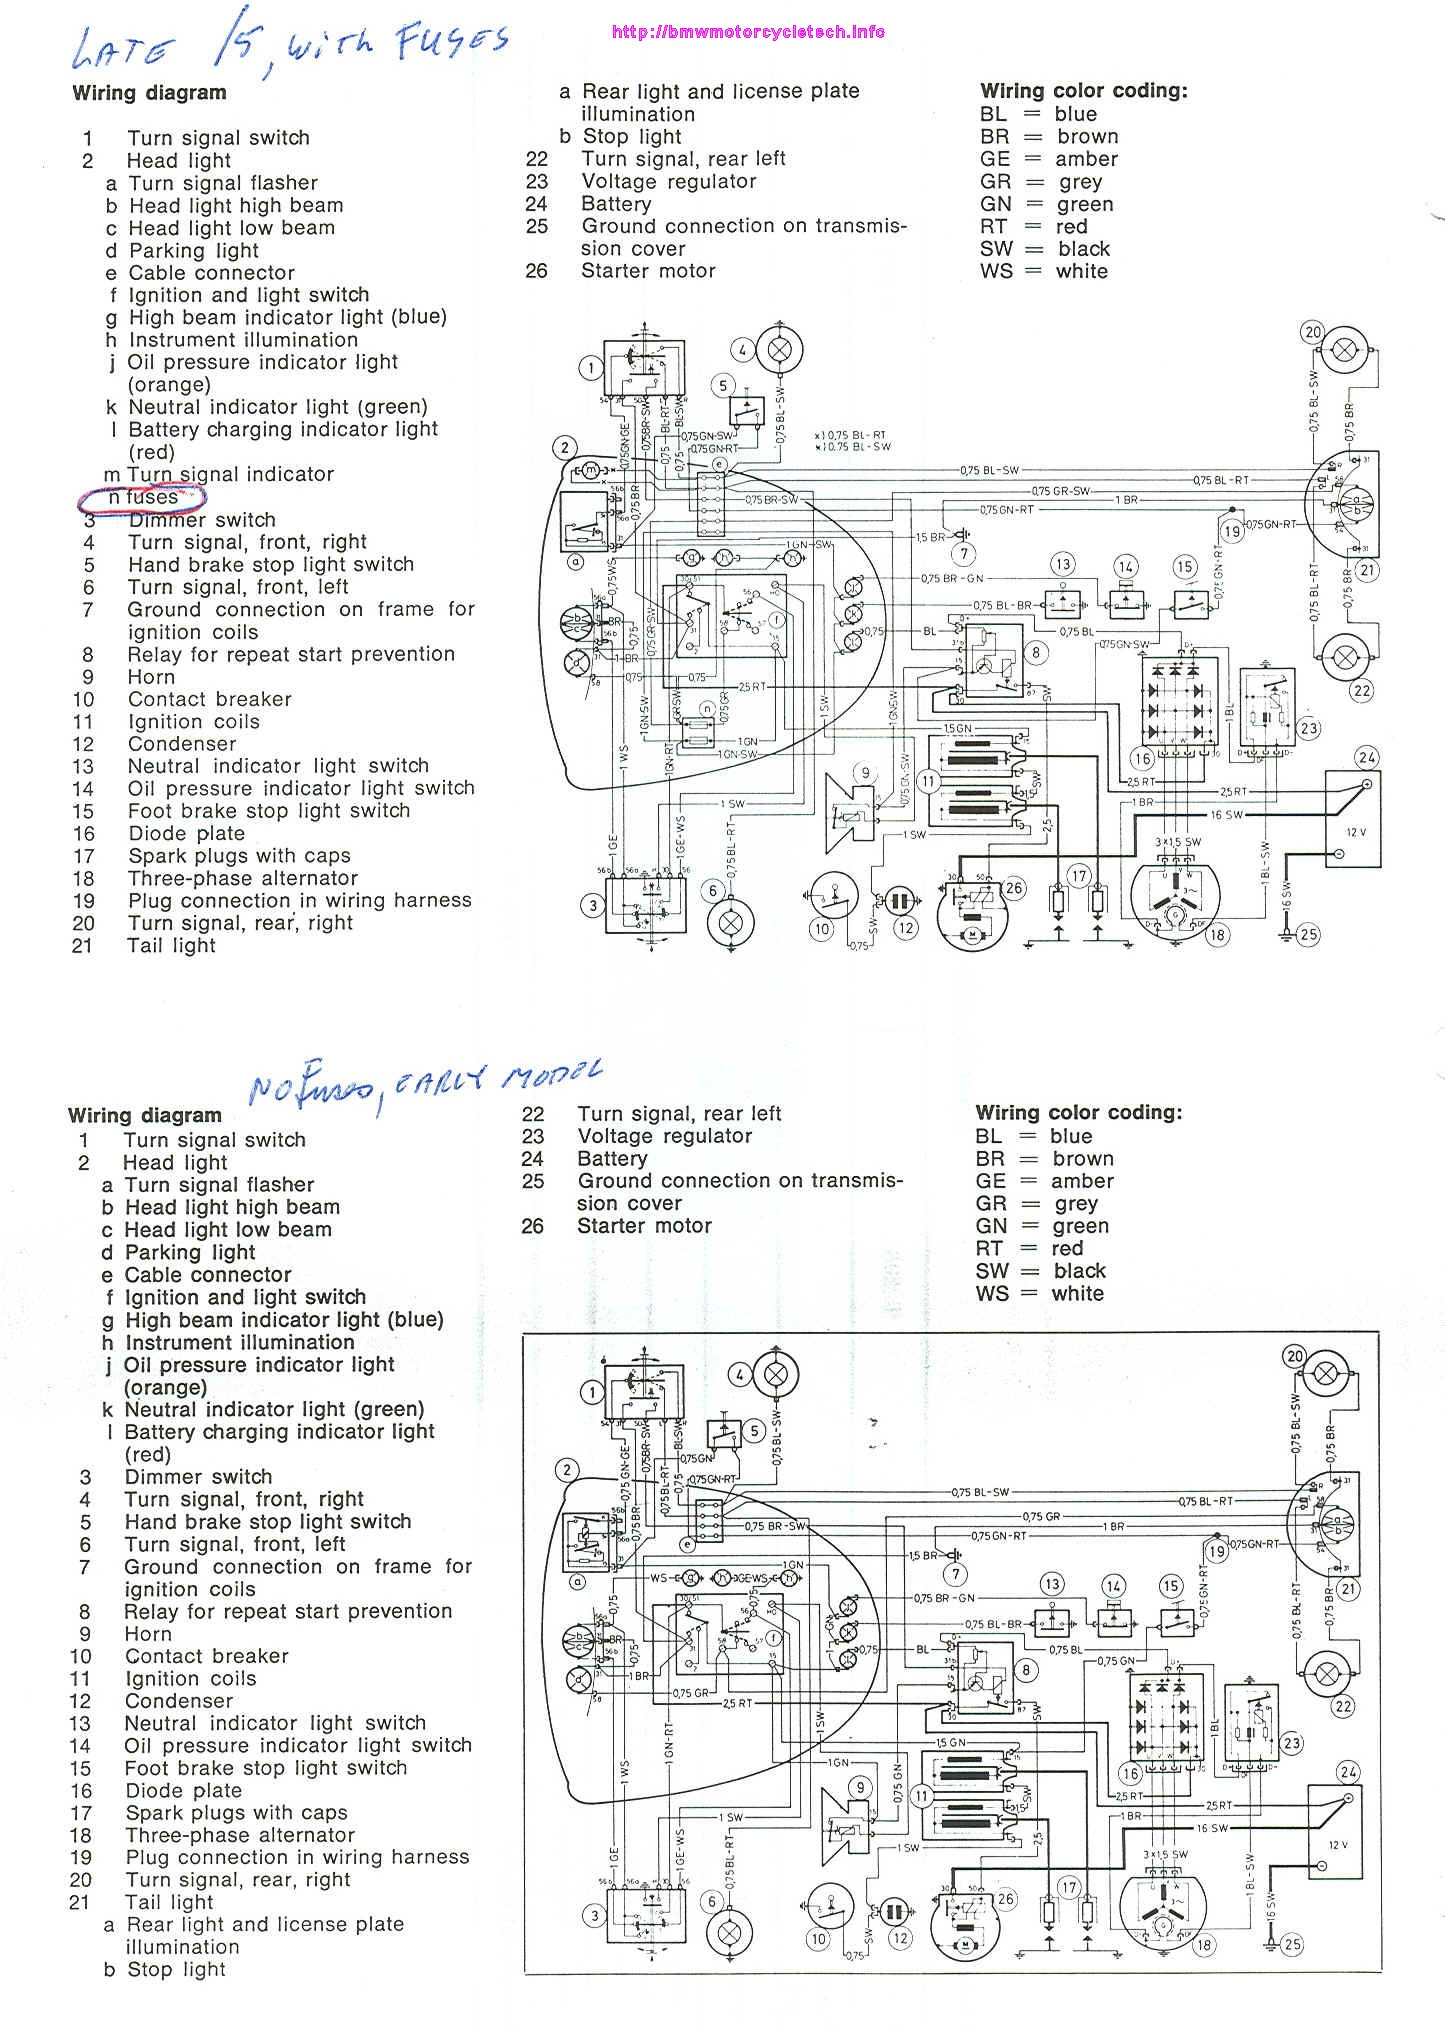 Snowbum BMW Motorcycle technical articles maintenance snobum – K1300s Wiring Diagram